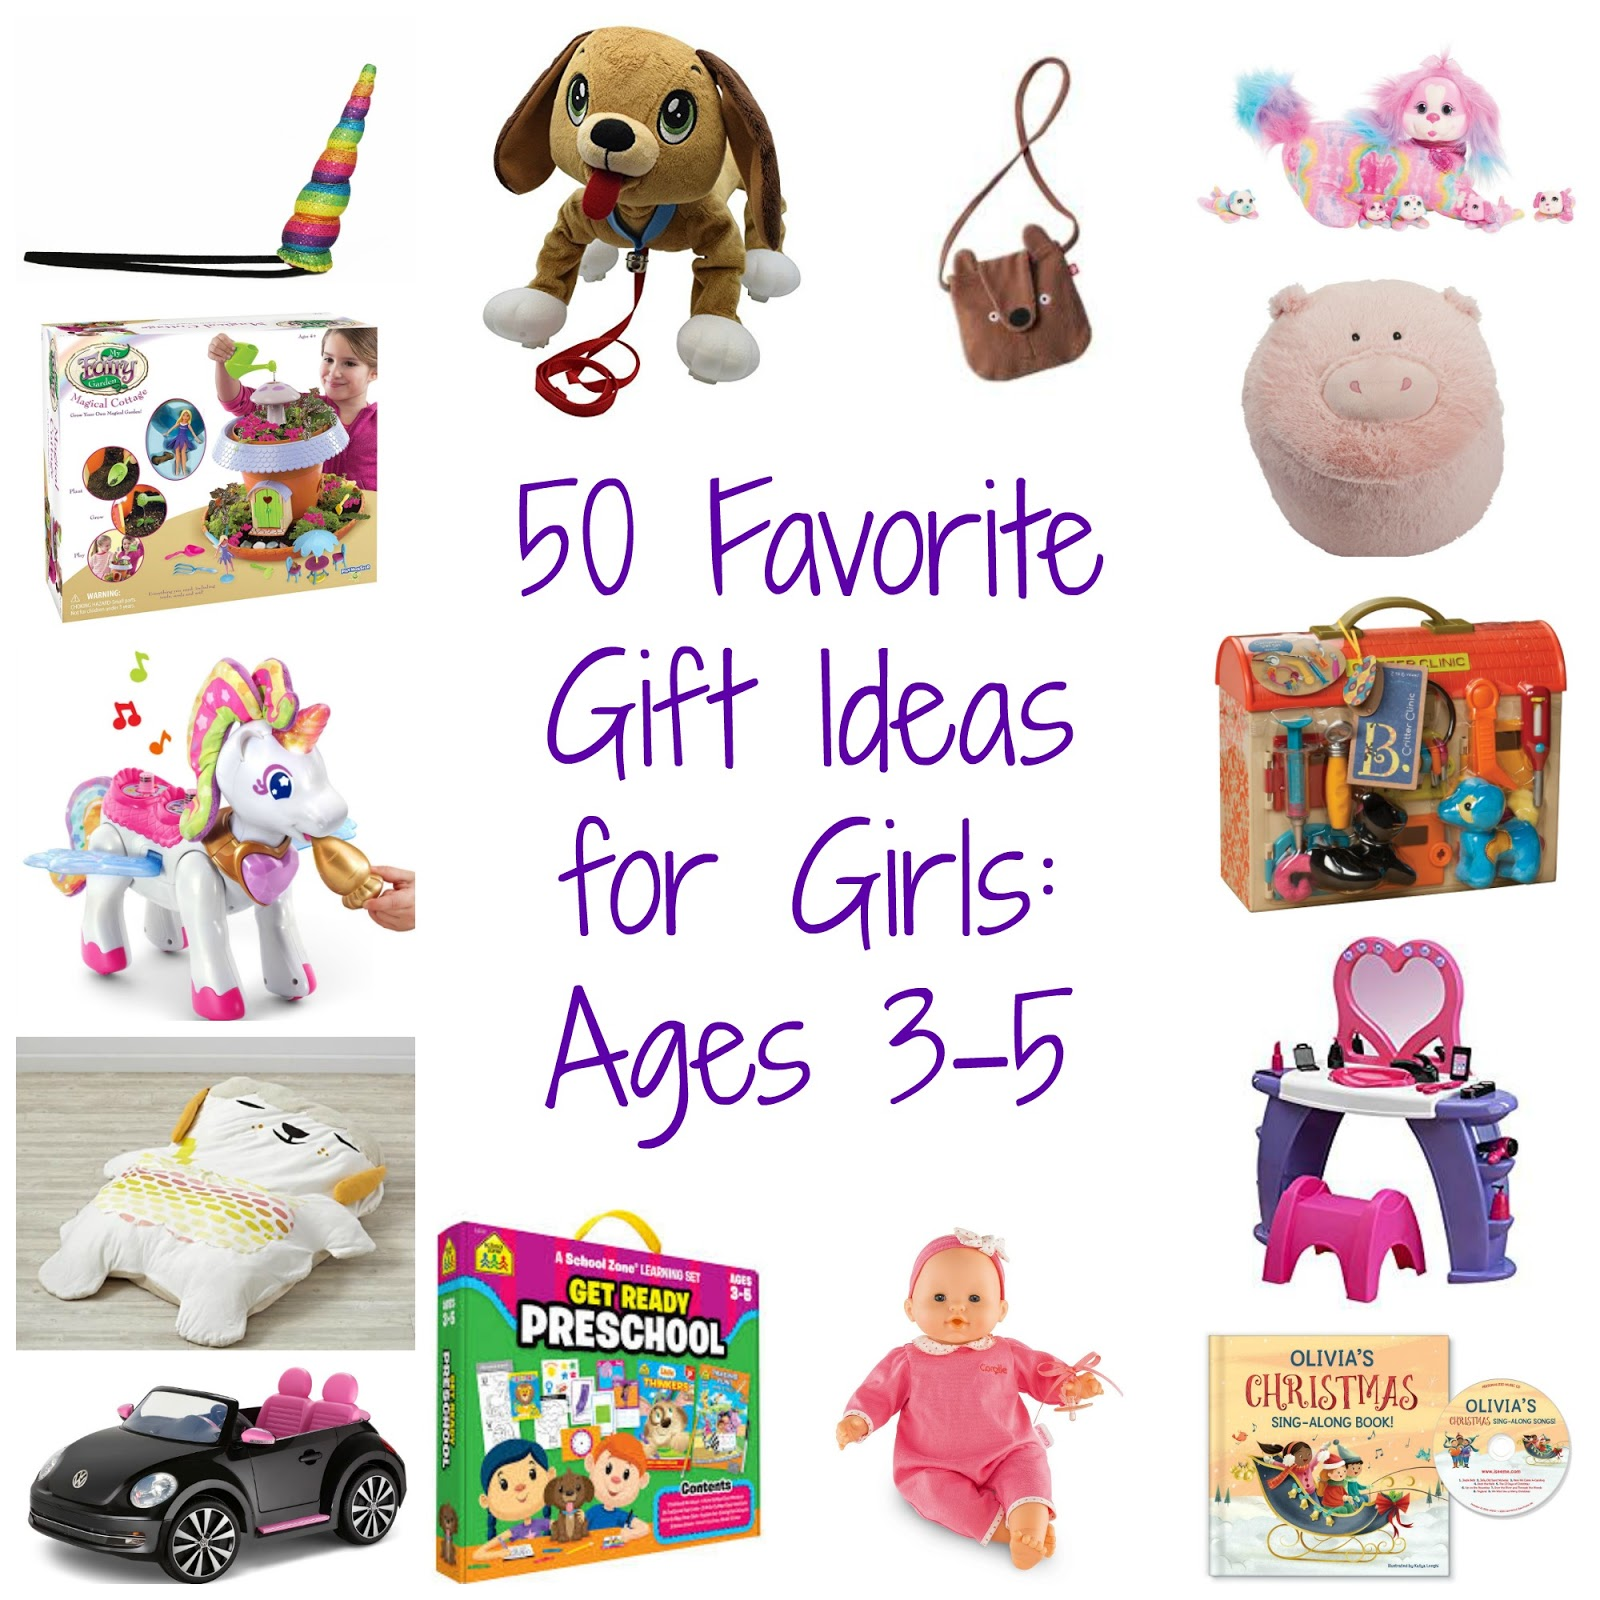 Gifts For Girls Age 6: 50 Favorite Gift Ideas For Girls, Ages 3-5